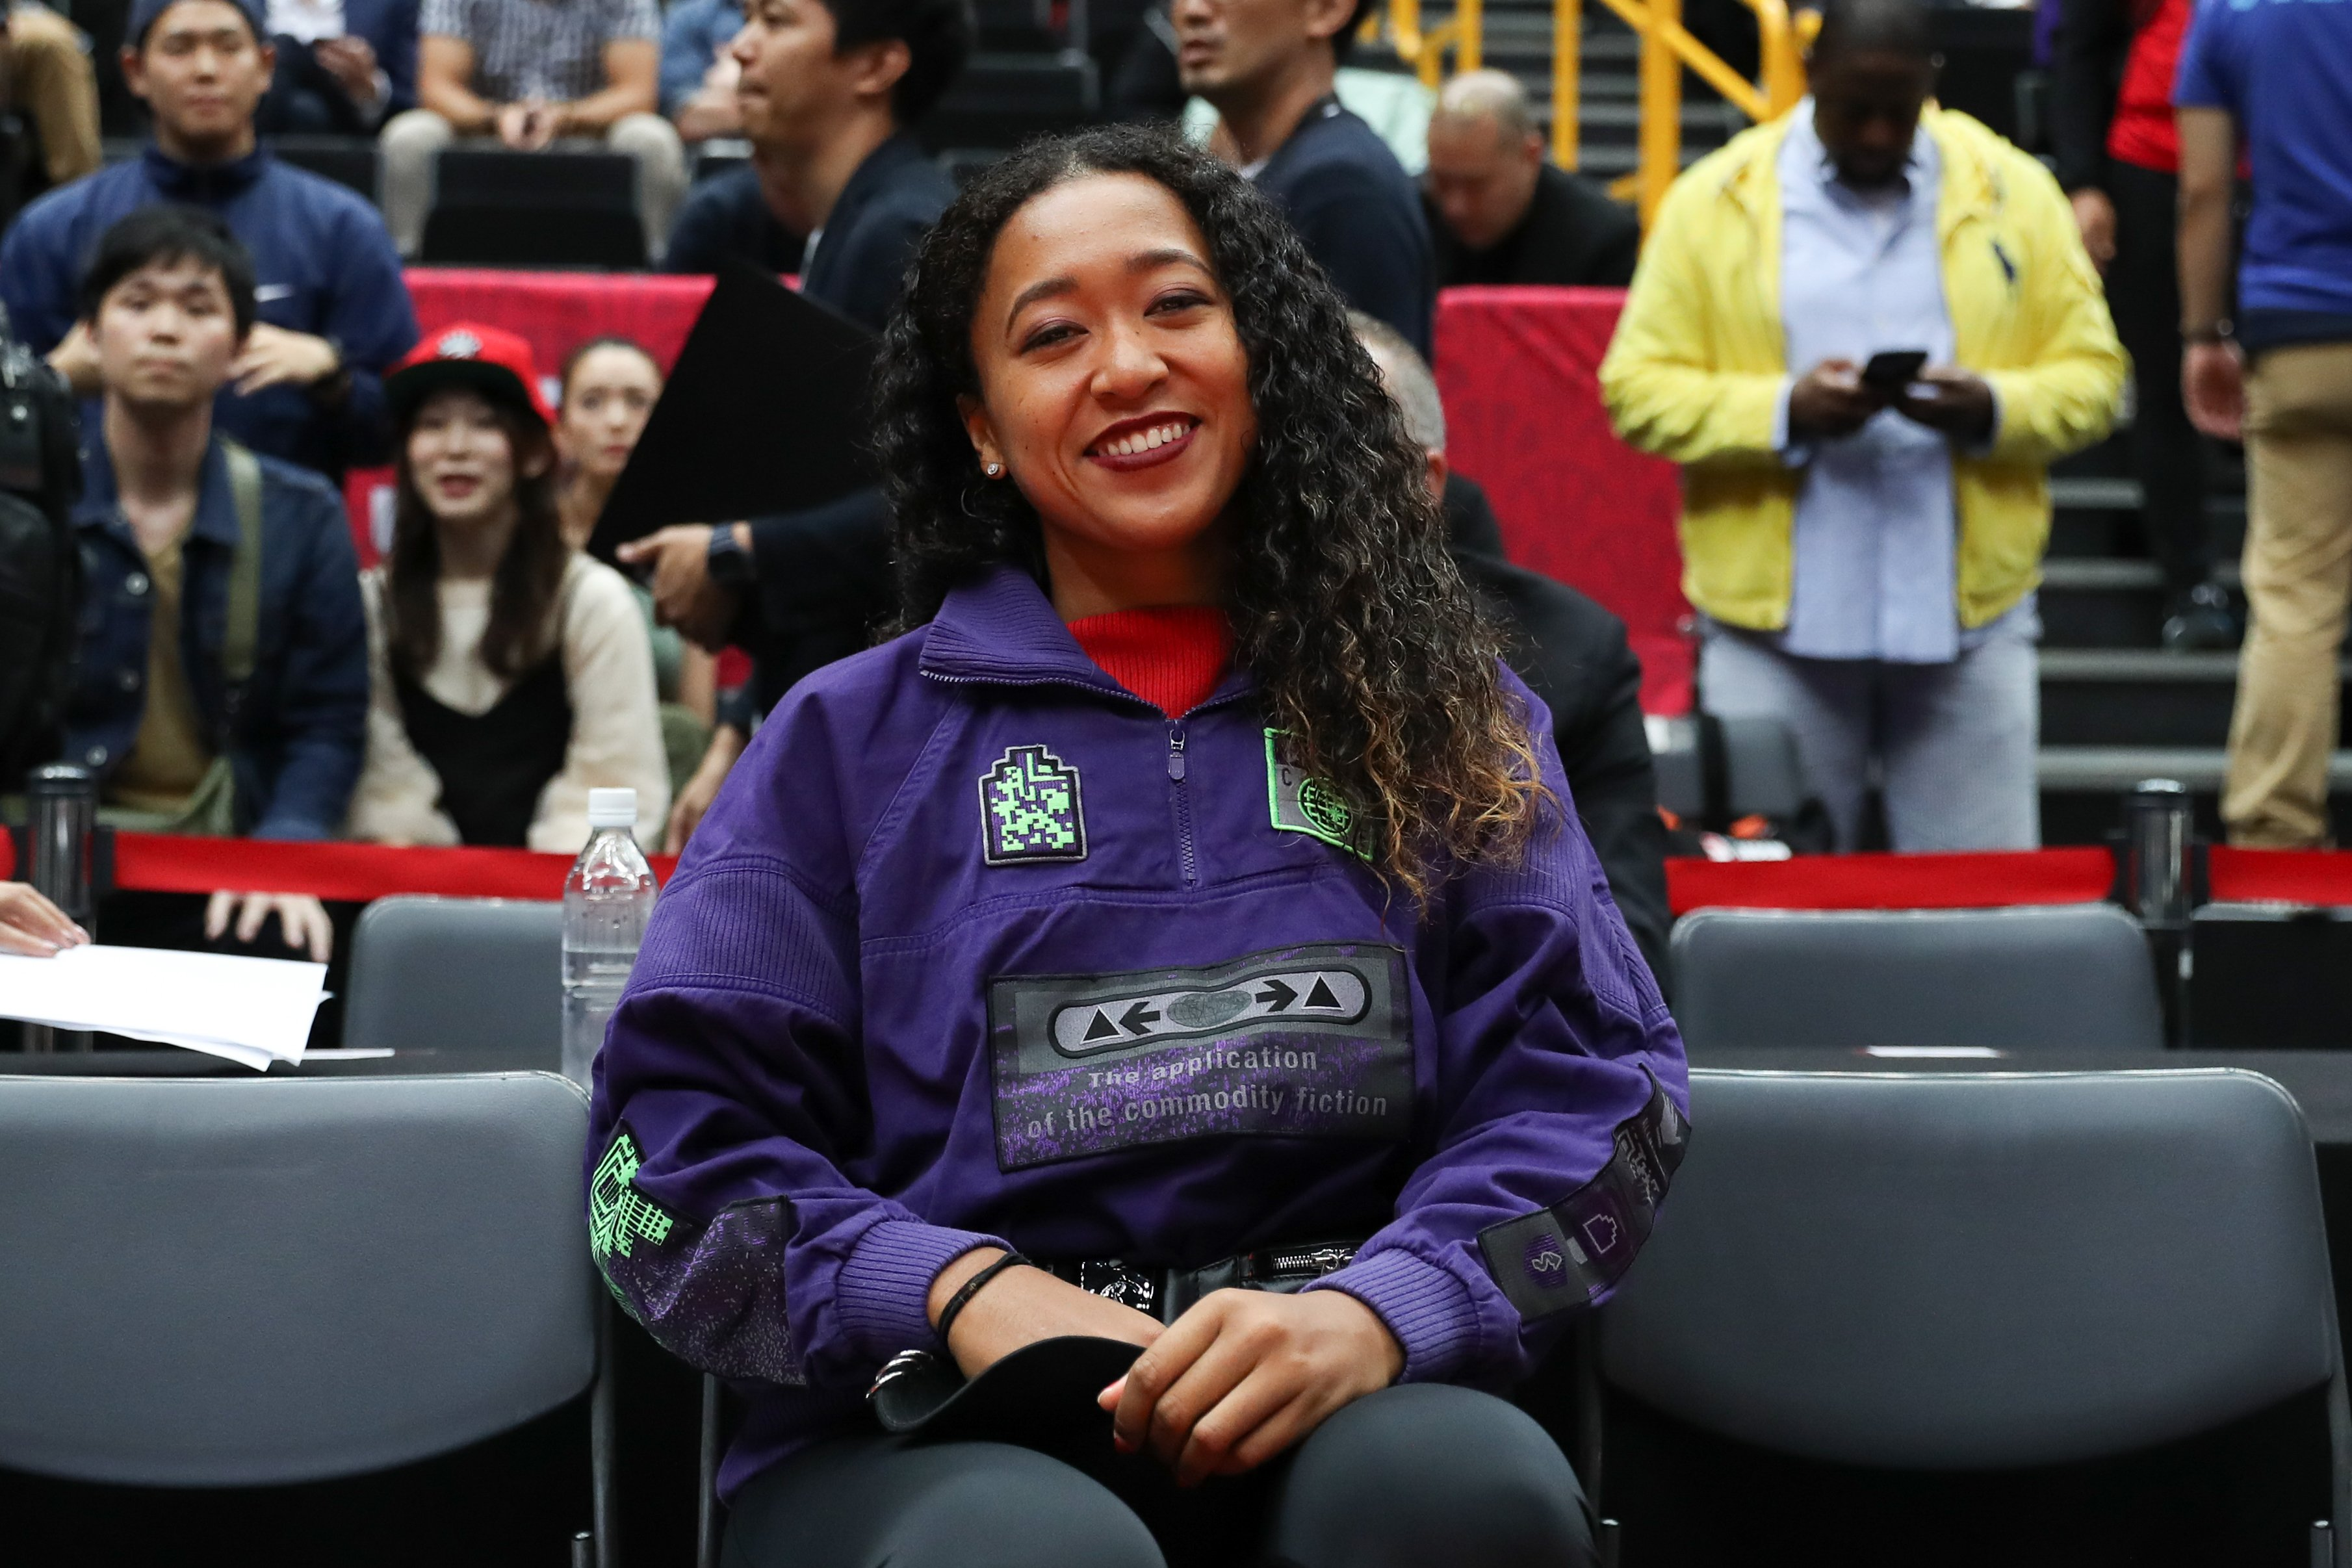 Tennis star Naomi Osaka poses for a photo before a match at Super Arena on October 10, 2019 in Saitama, Japan | Photo: Getty Images